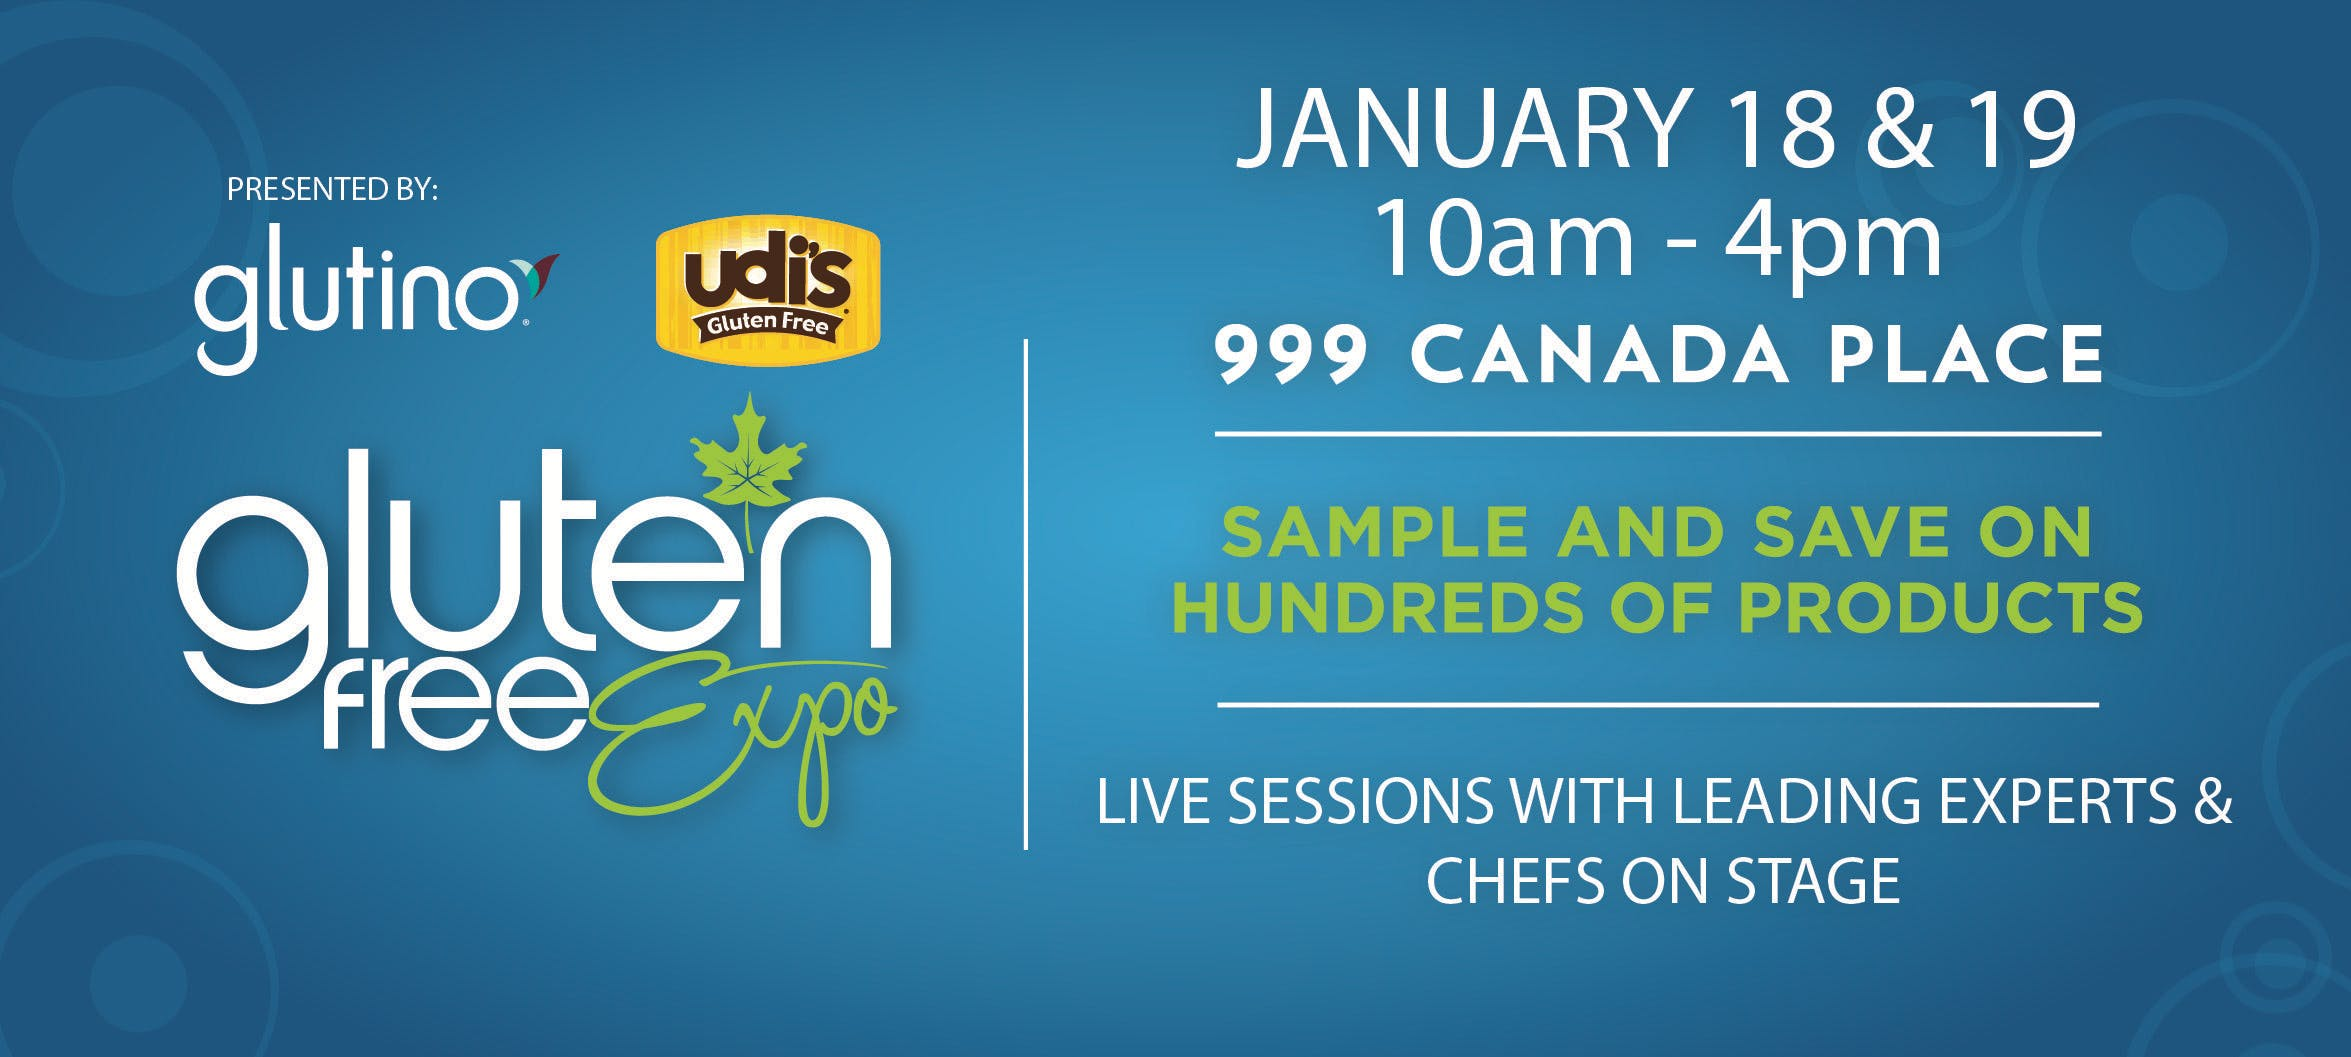 Canadas Largest Gluten Free Event Visits Vancouver January 18-19 2020